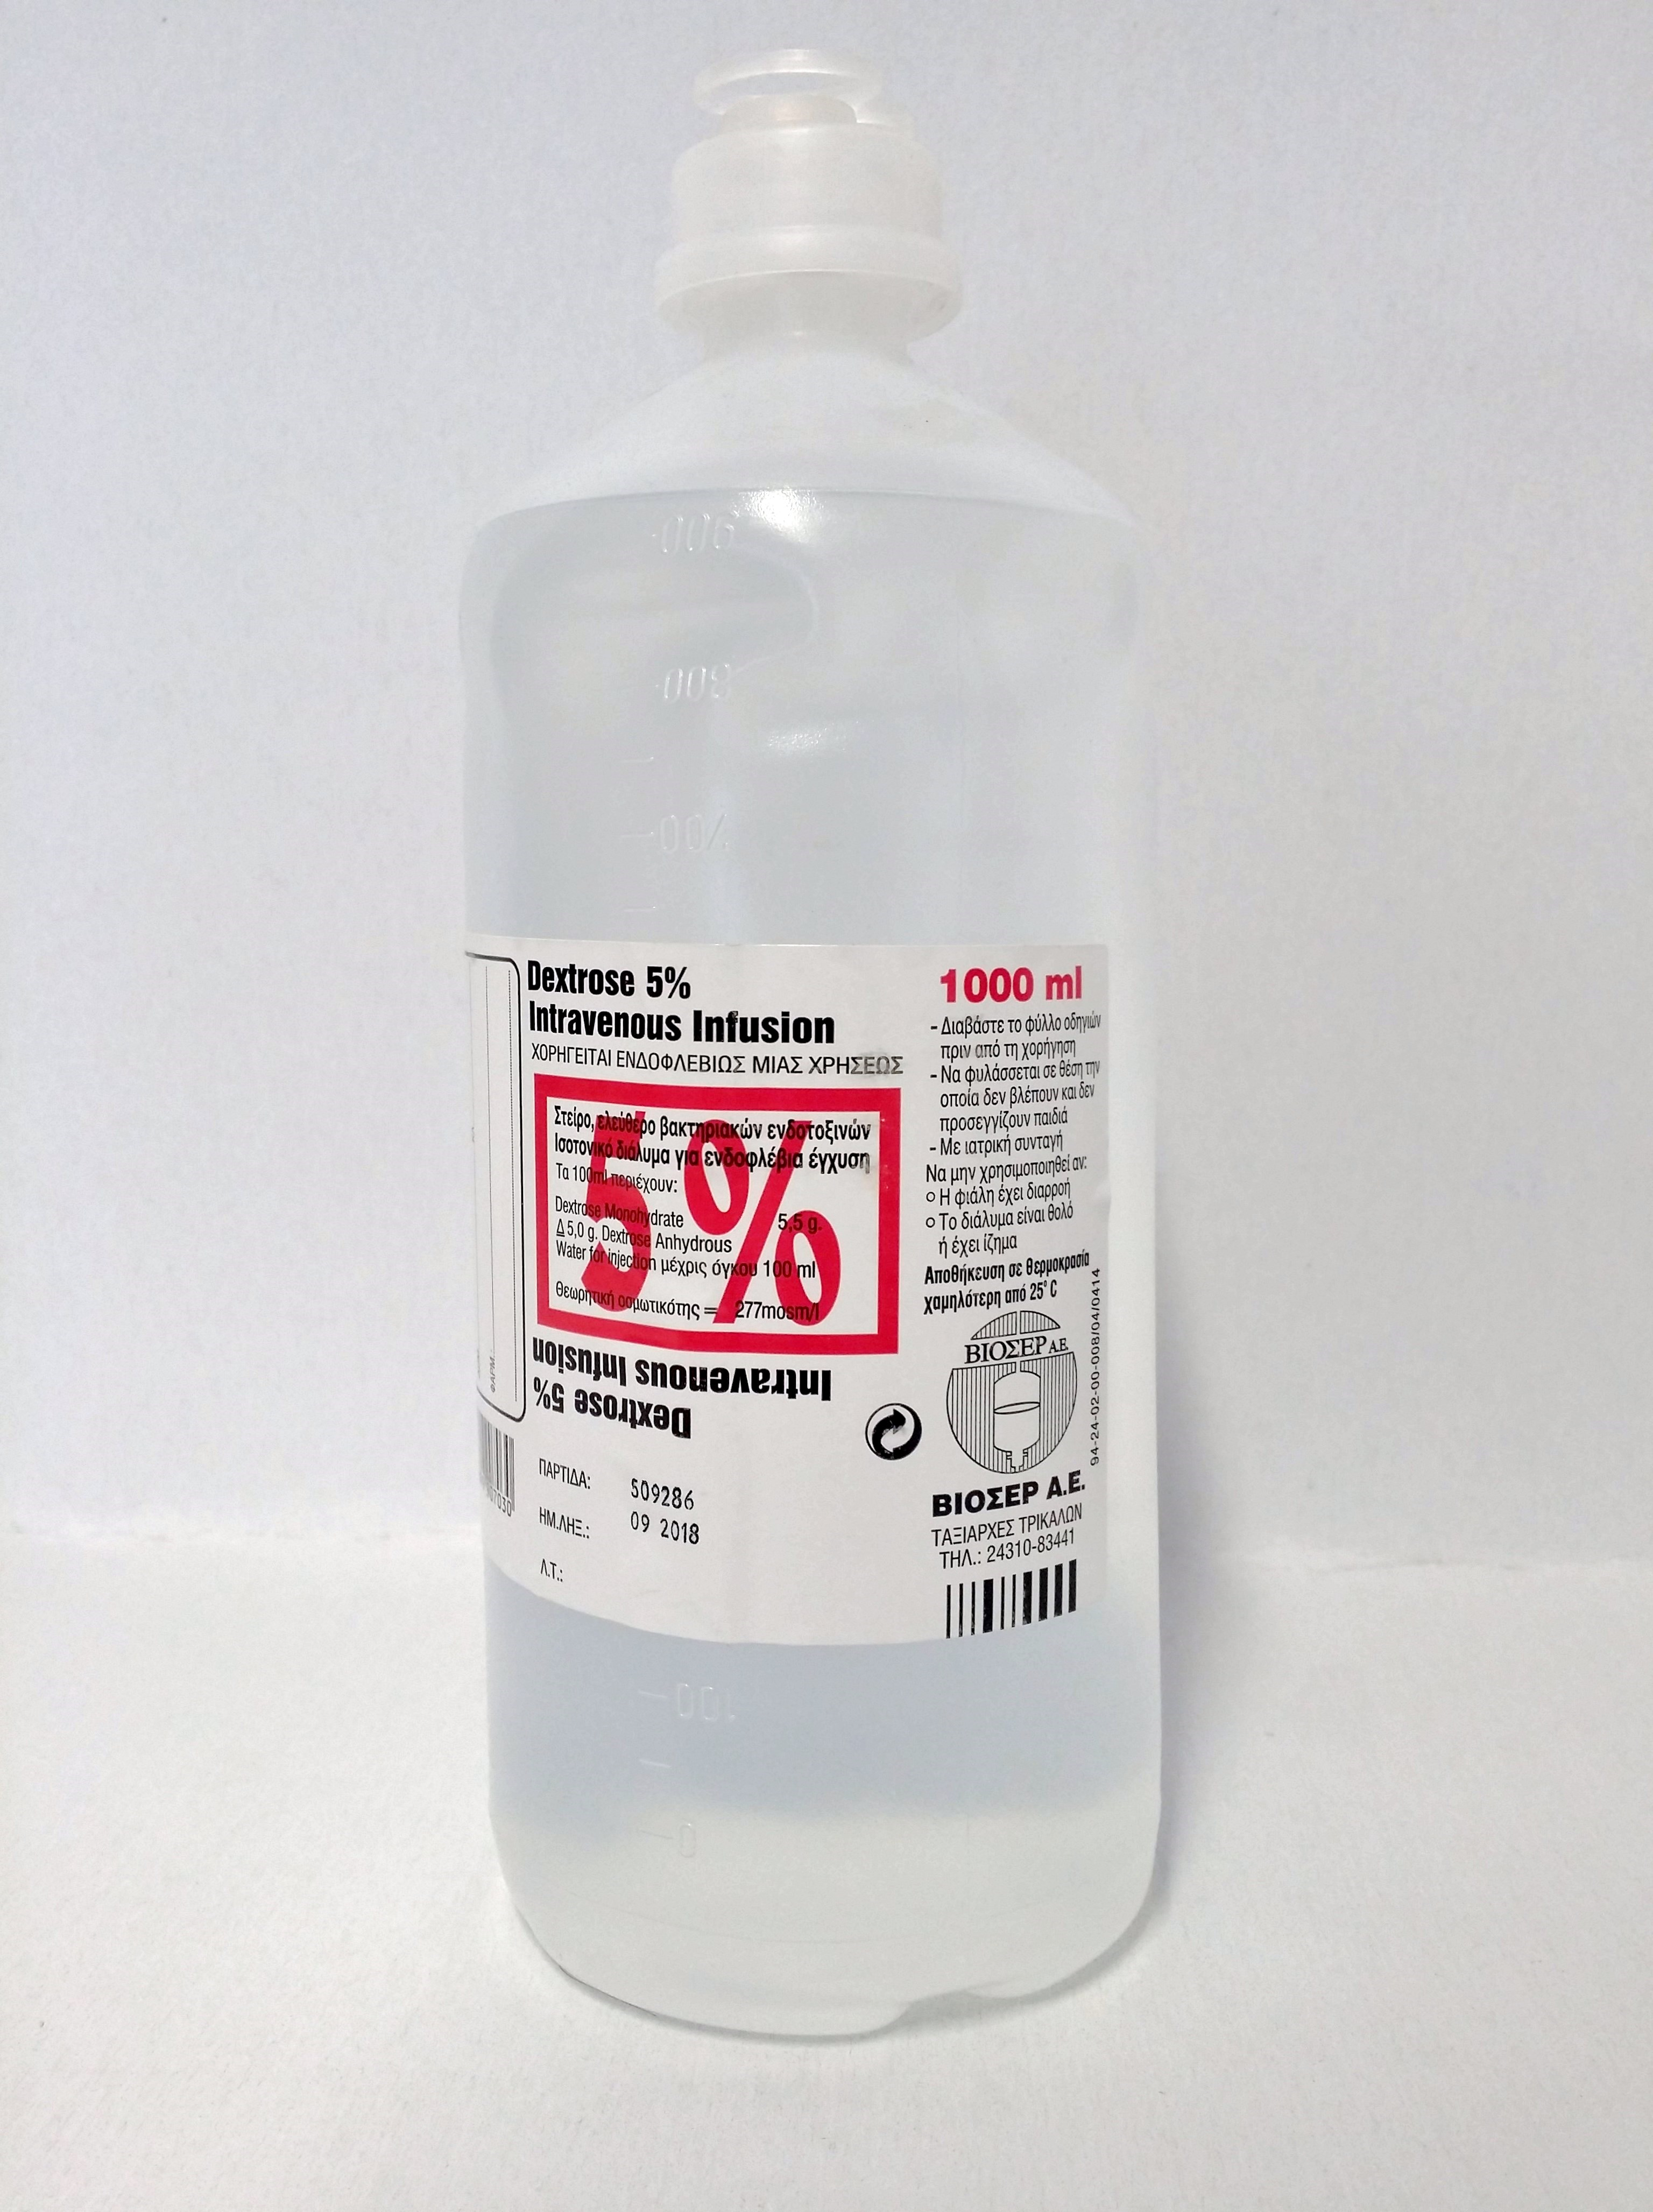 Dextrose Inj. 5%, 1000 ml